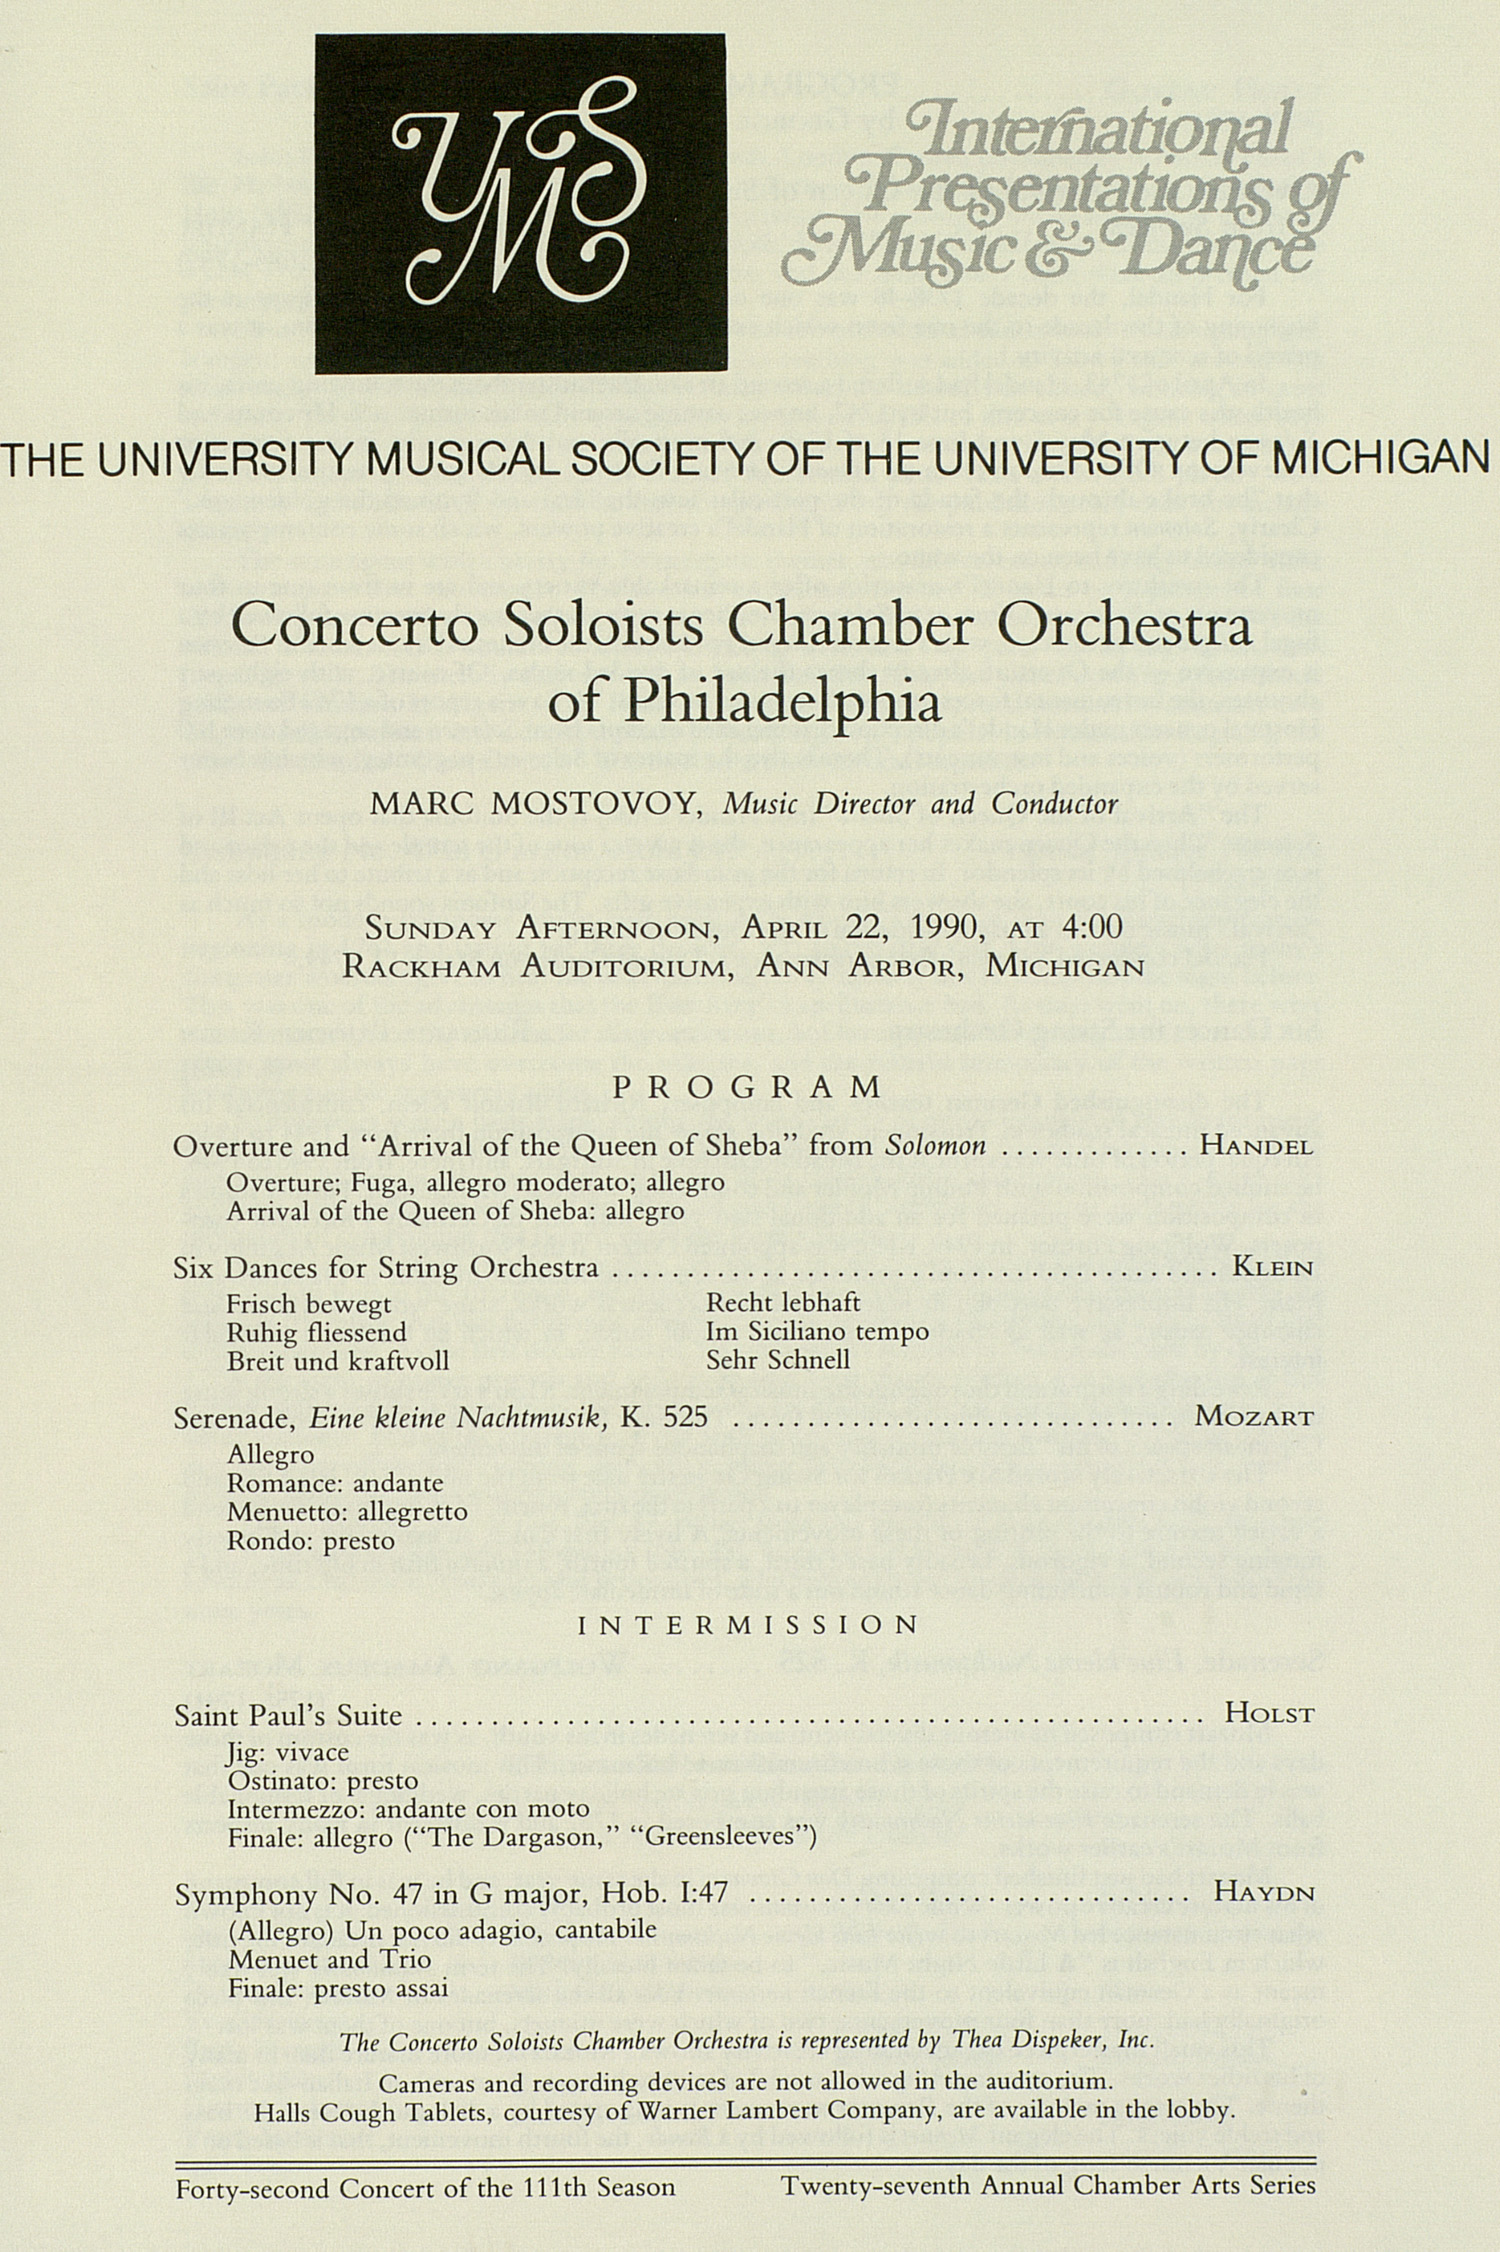 UMS Concert Program, April 22, 1990: International Presentations Of Music & Dance -- Concerto Soloists Chamber Orchestra image